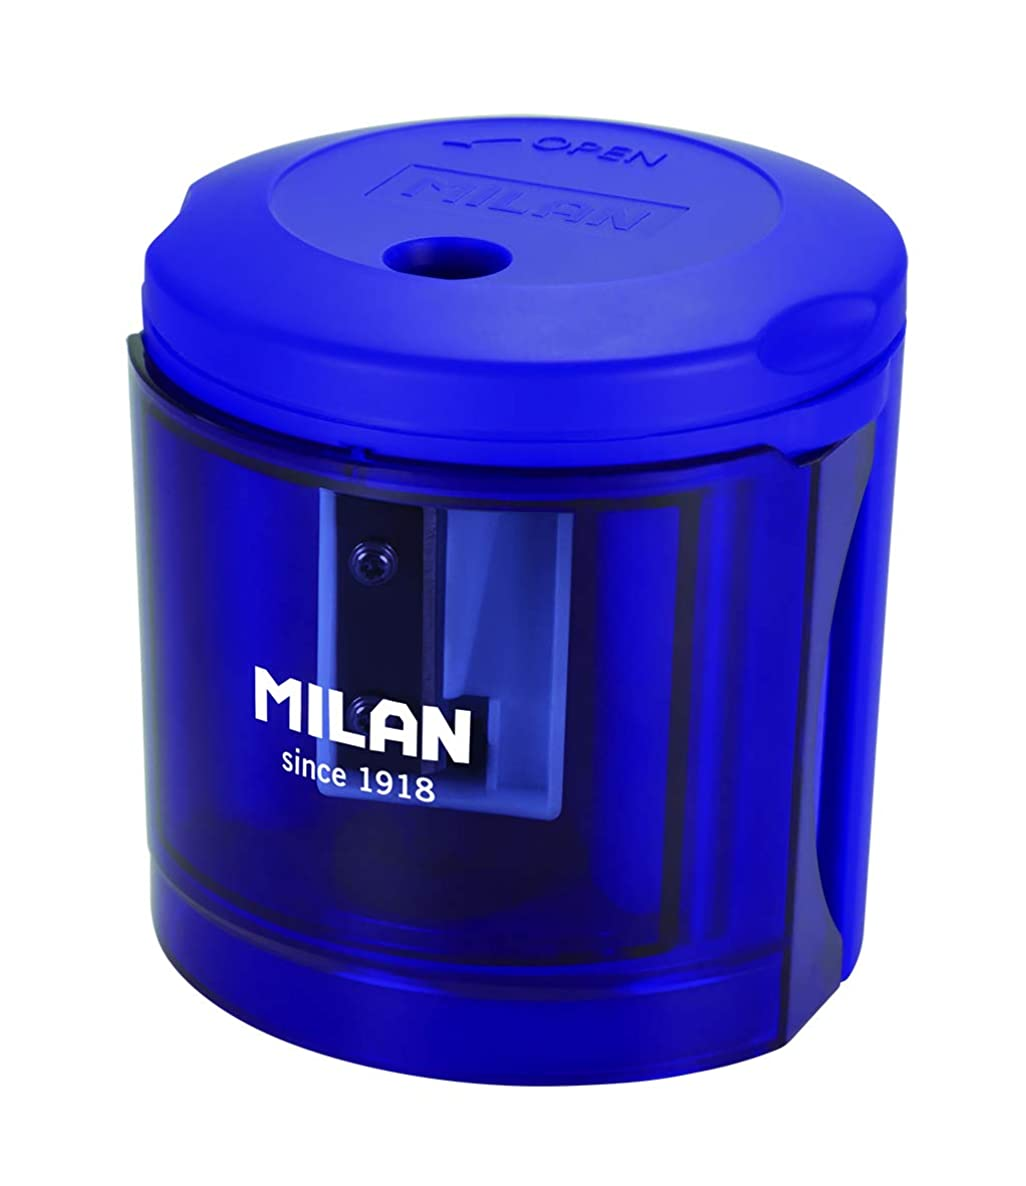 MILAN Electric Pencil Sharpener, Blister Pack, Power Sharp